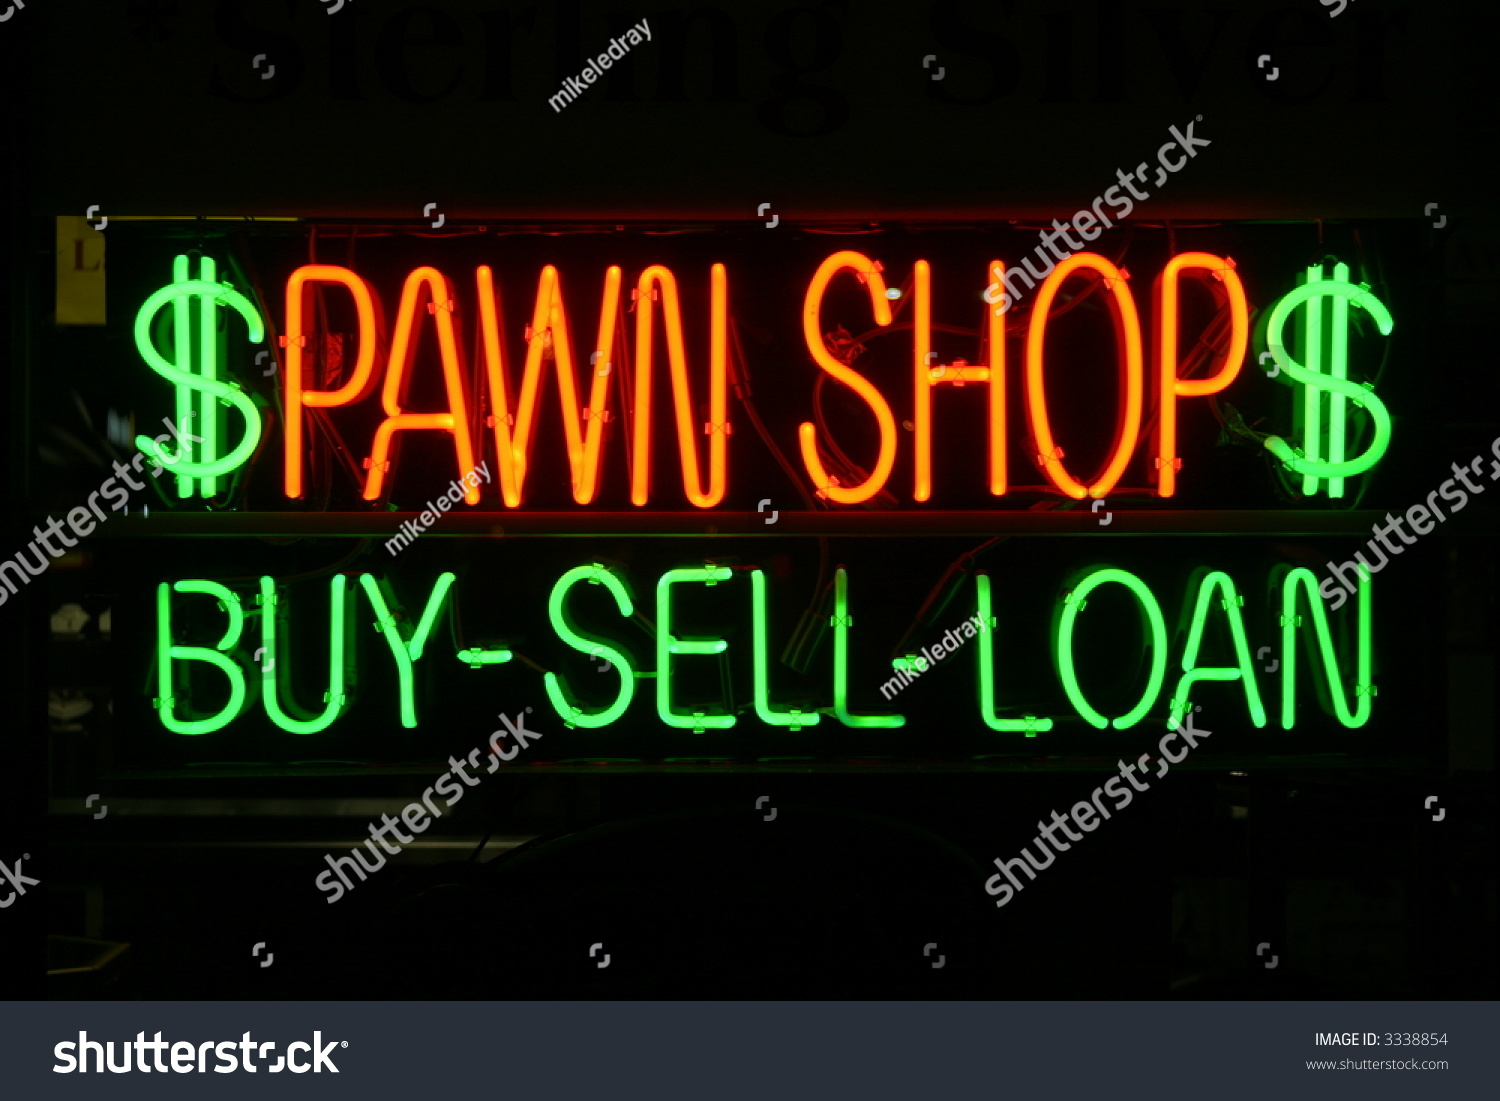 Neon sign series pawn shop buy sell loan stock photo 3338854 shutterstock Easy pond shop